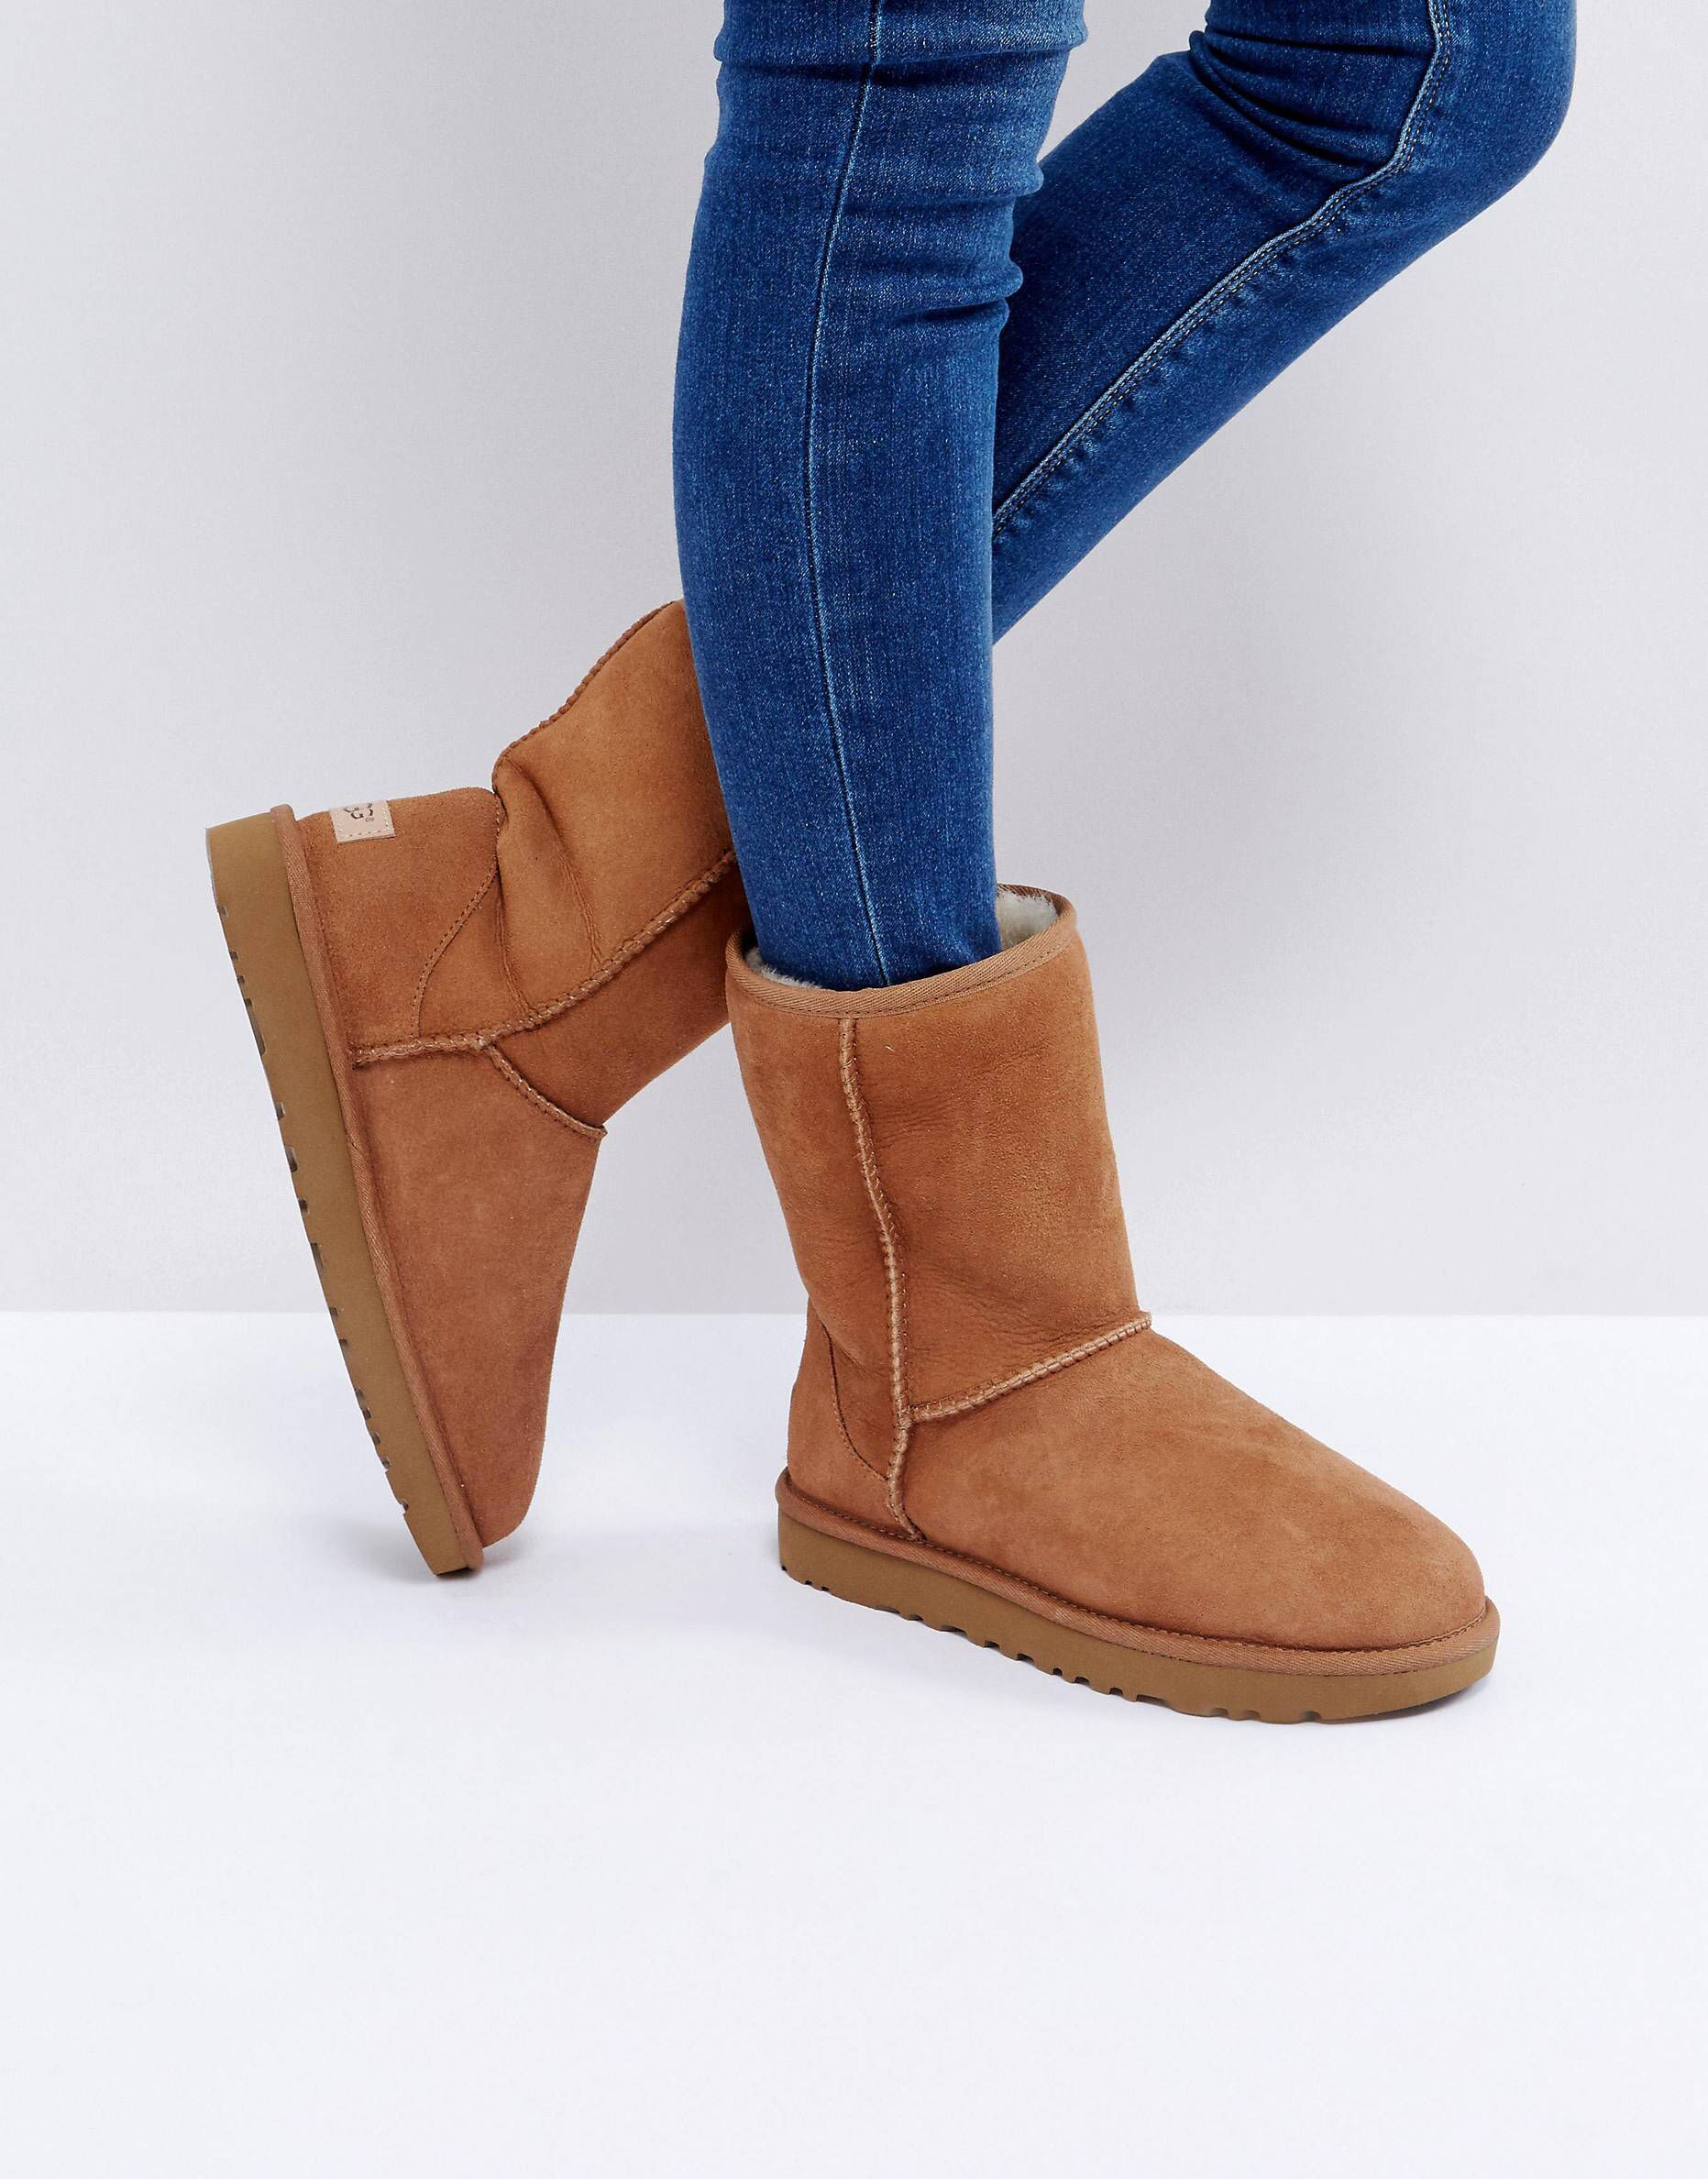 Just When I Thought I Didn T Need Something New From Asos I Kinda Do Ugg Boots Chestnut Boots Ugg Classic Short Chestnut